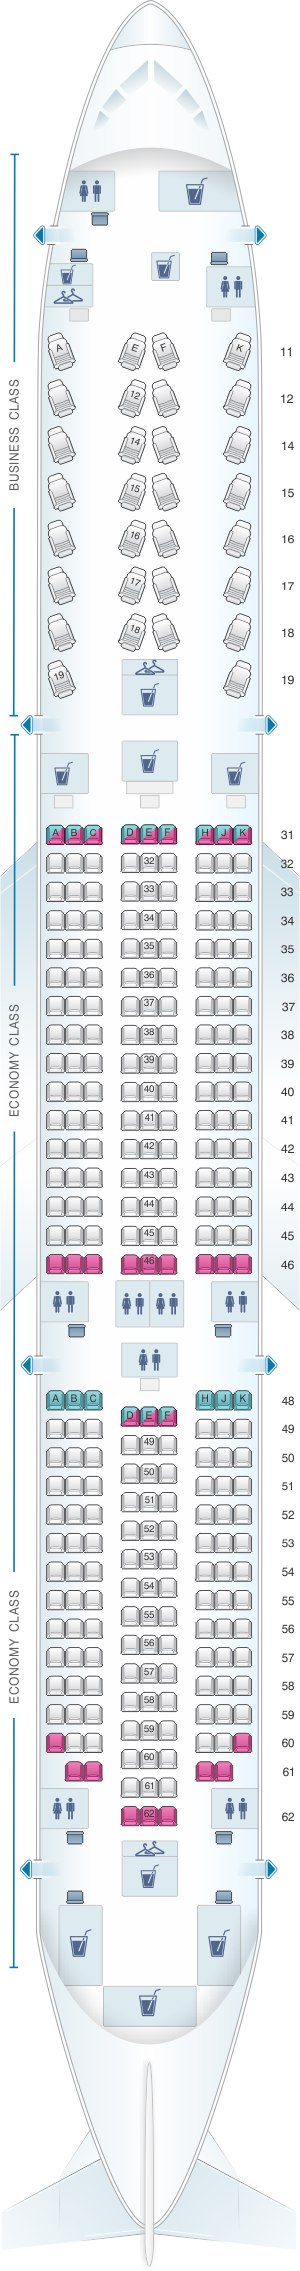 Seat map for Thai Airways International Boeing B787 9